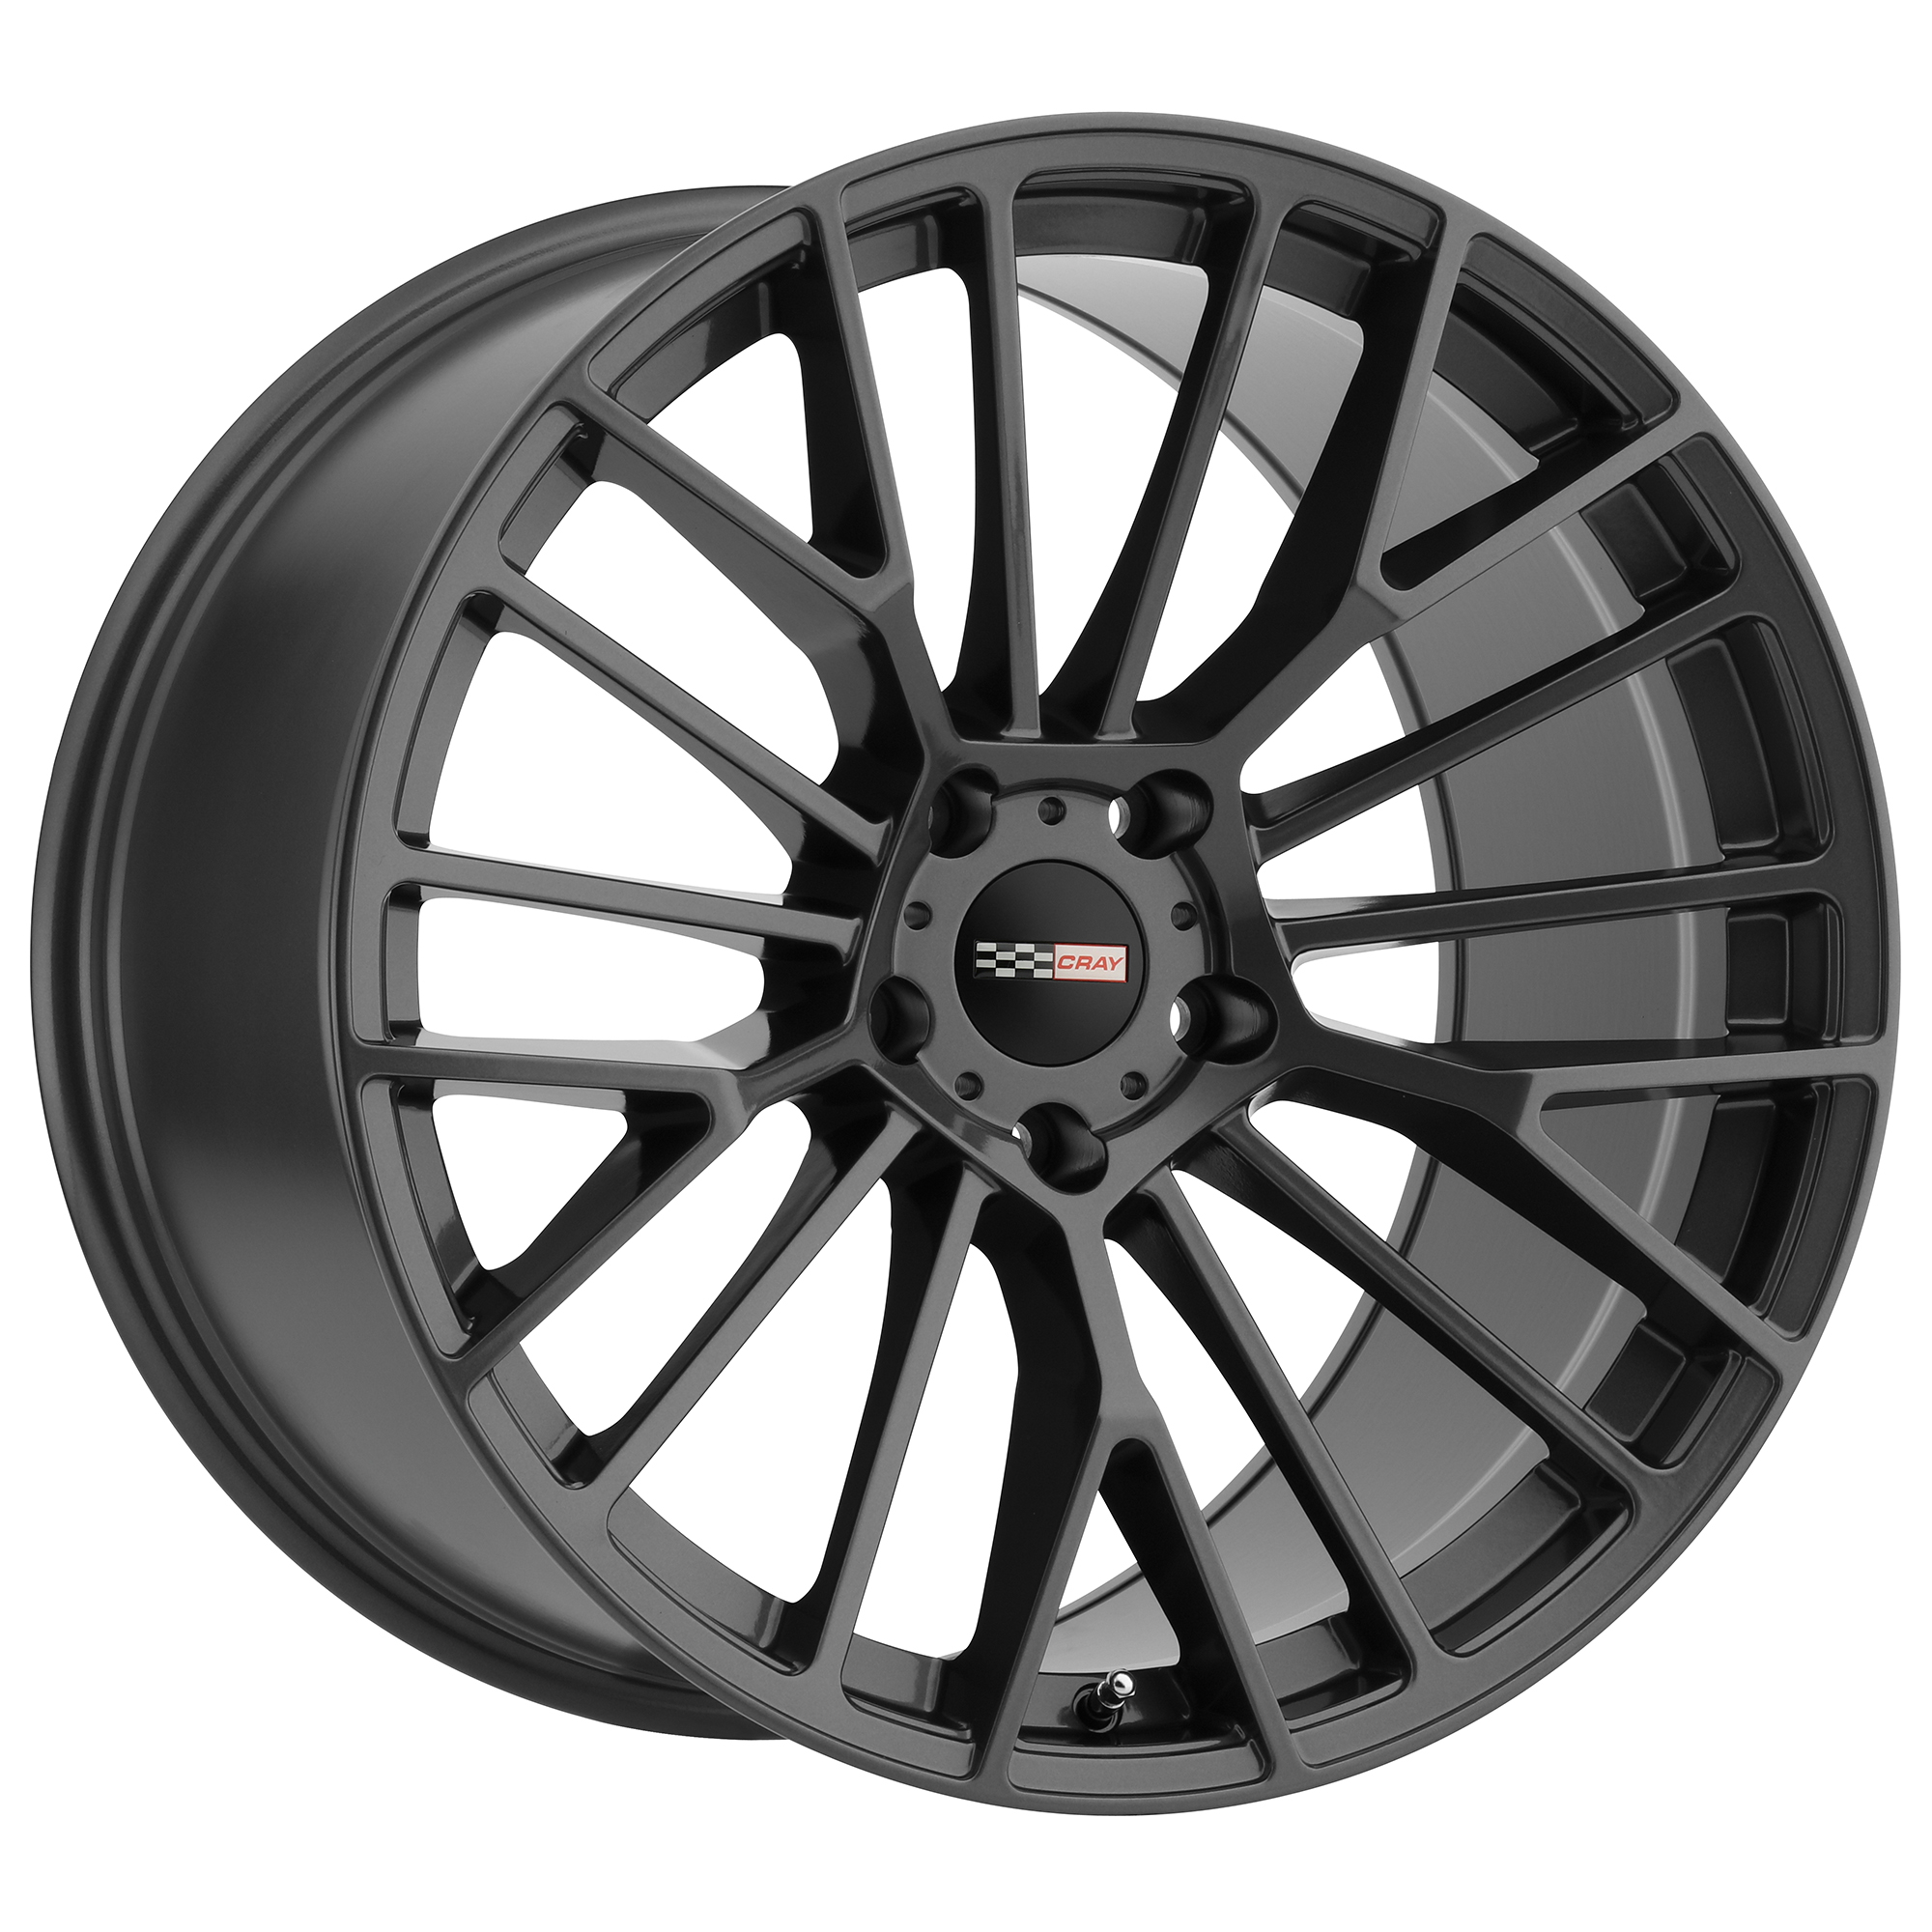 Astoria Corvette Rims By Cray